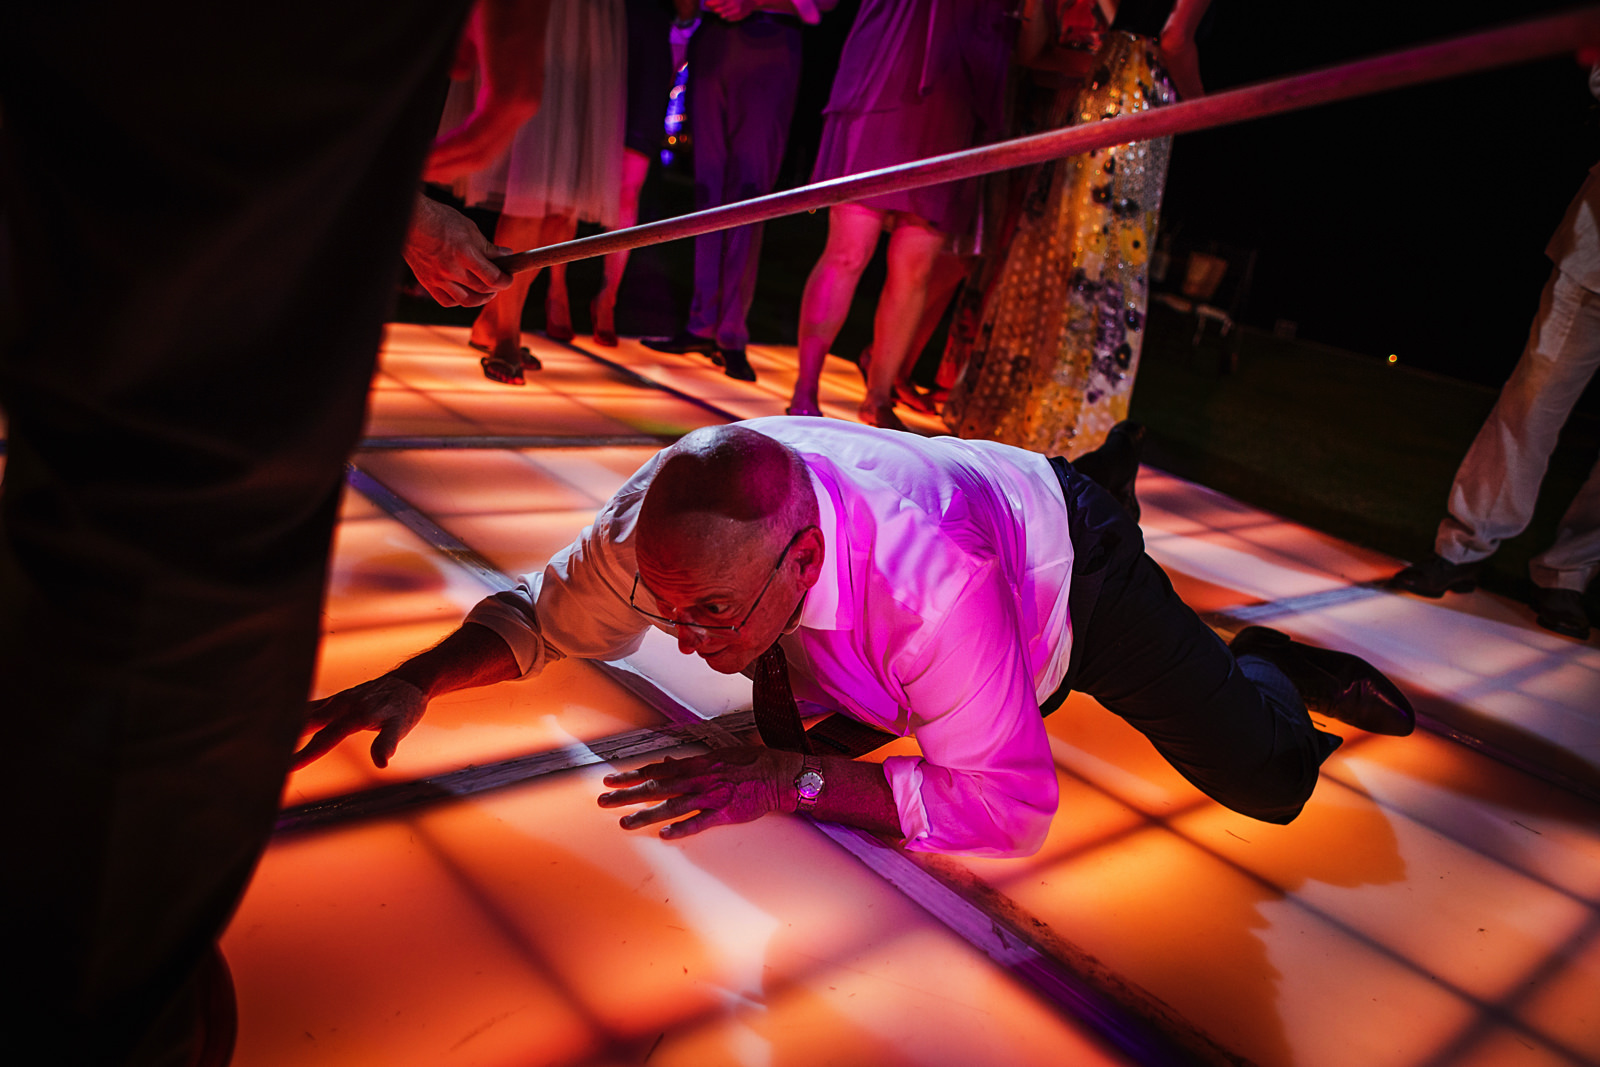 Father of the groom crawling under the limbo at wedding reception party